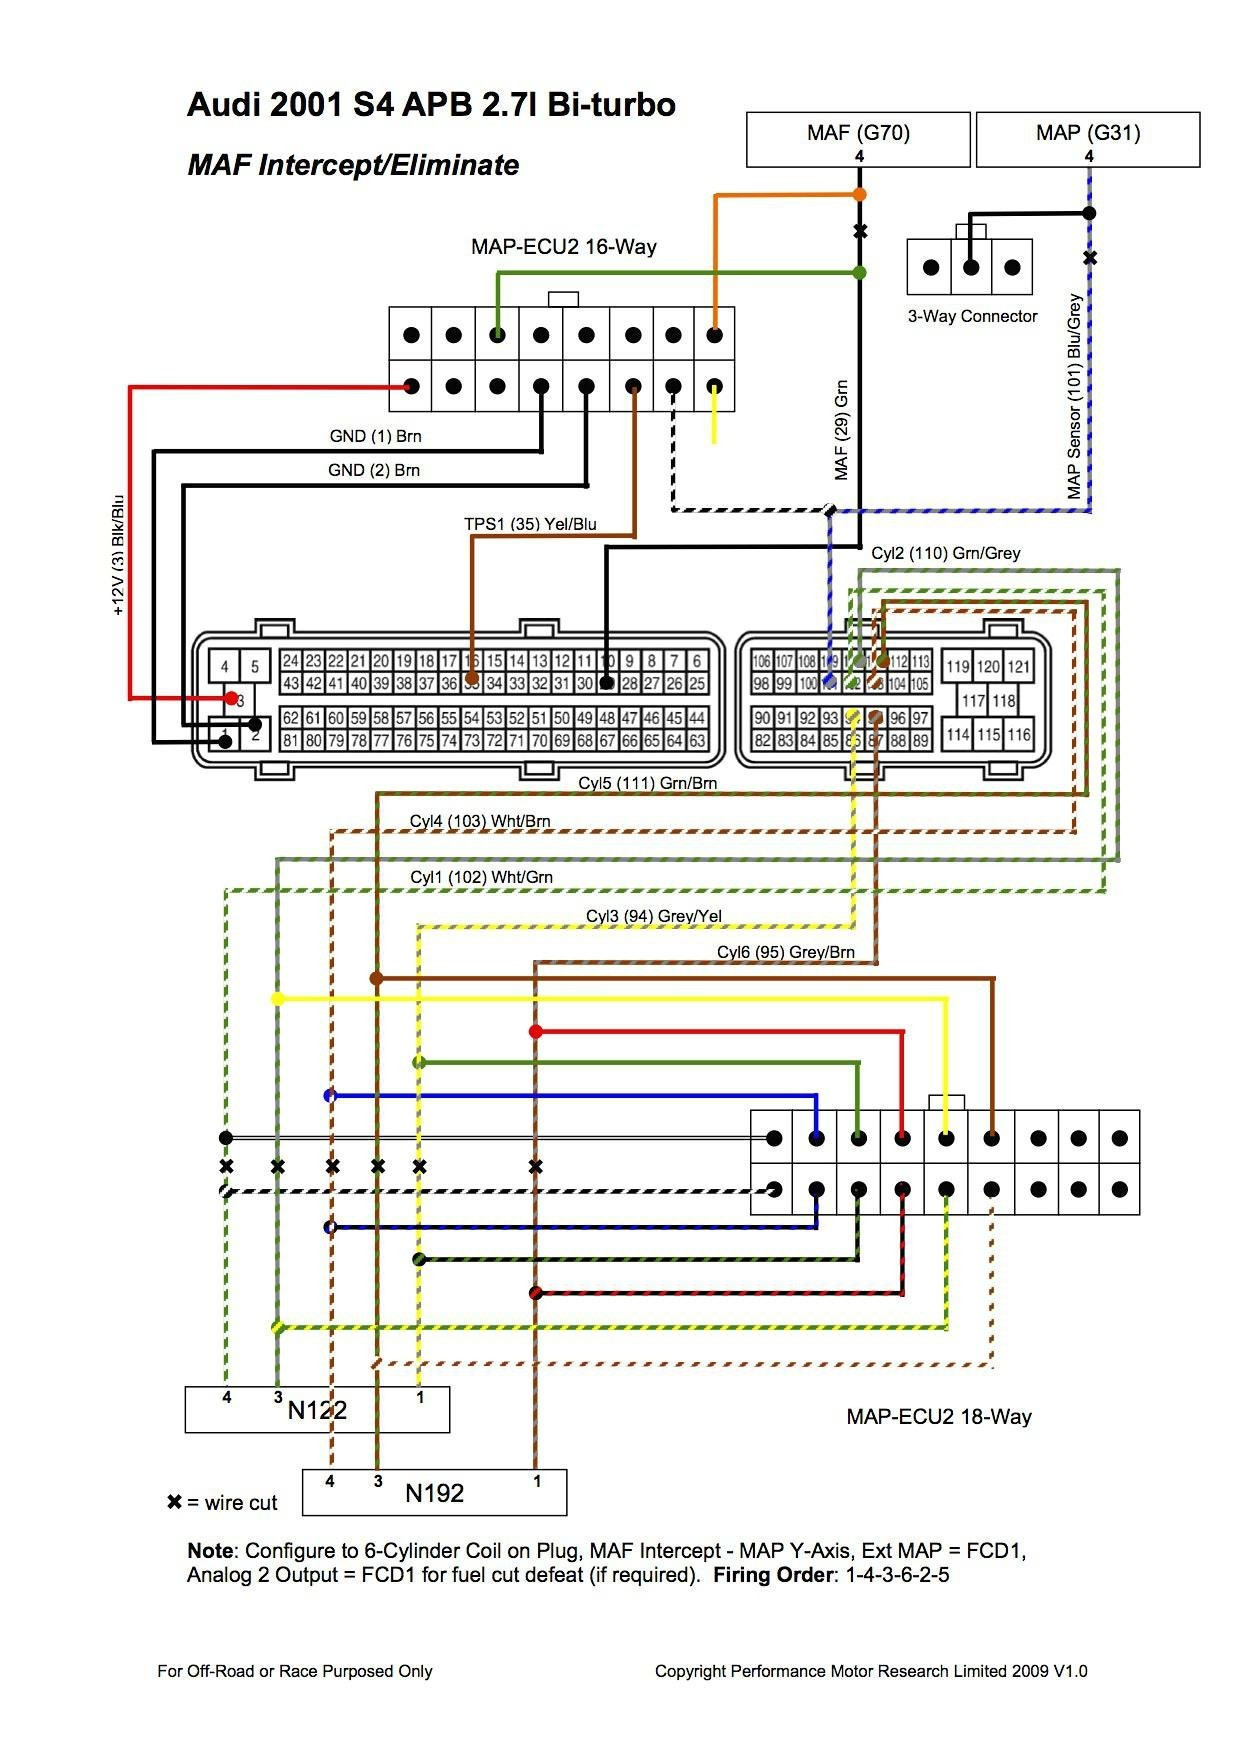 2002 Dodge Grand Caravan Stereo Wiring Diagram Residential